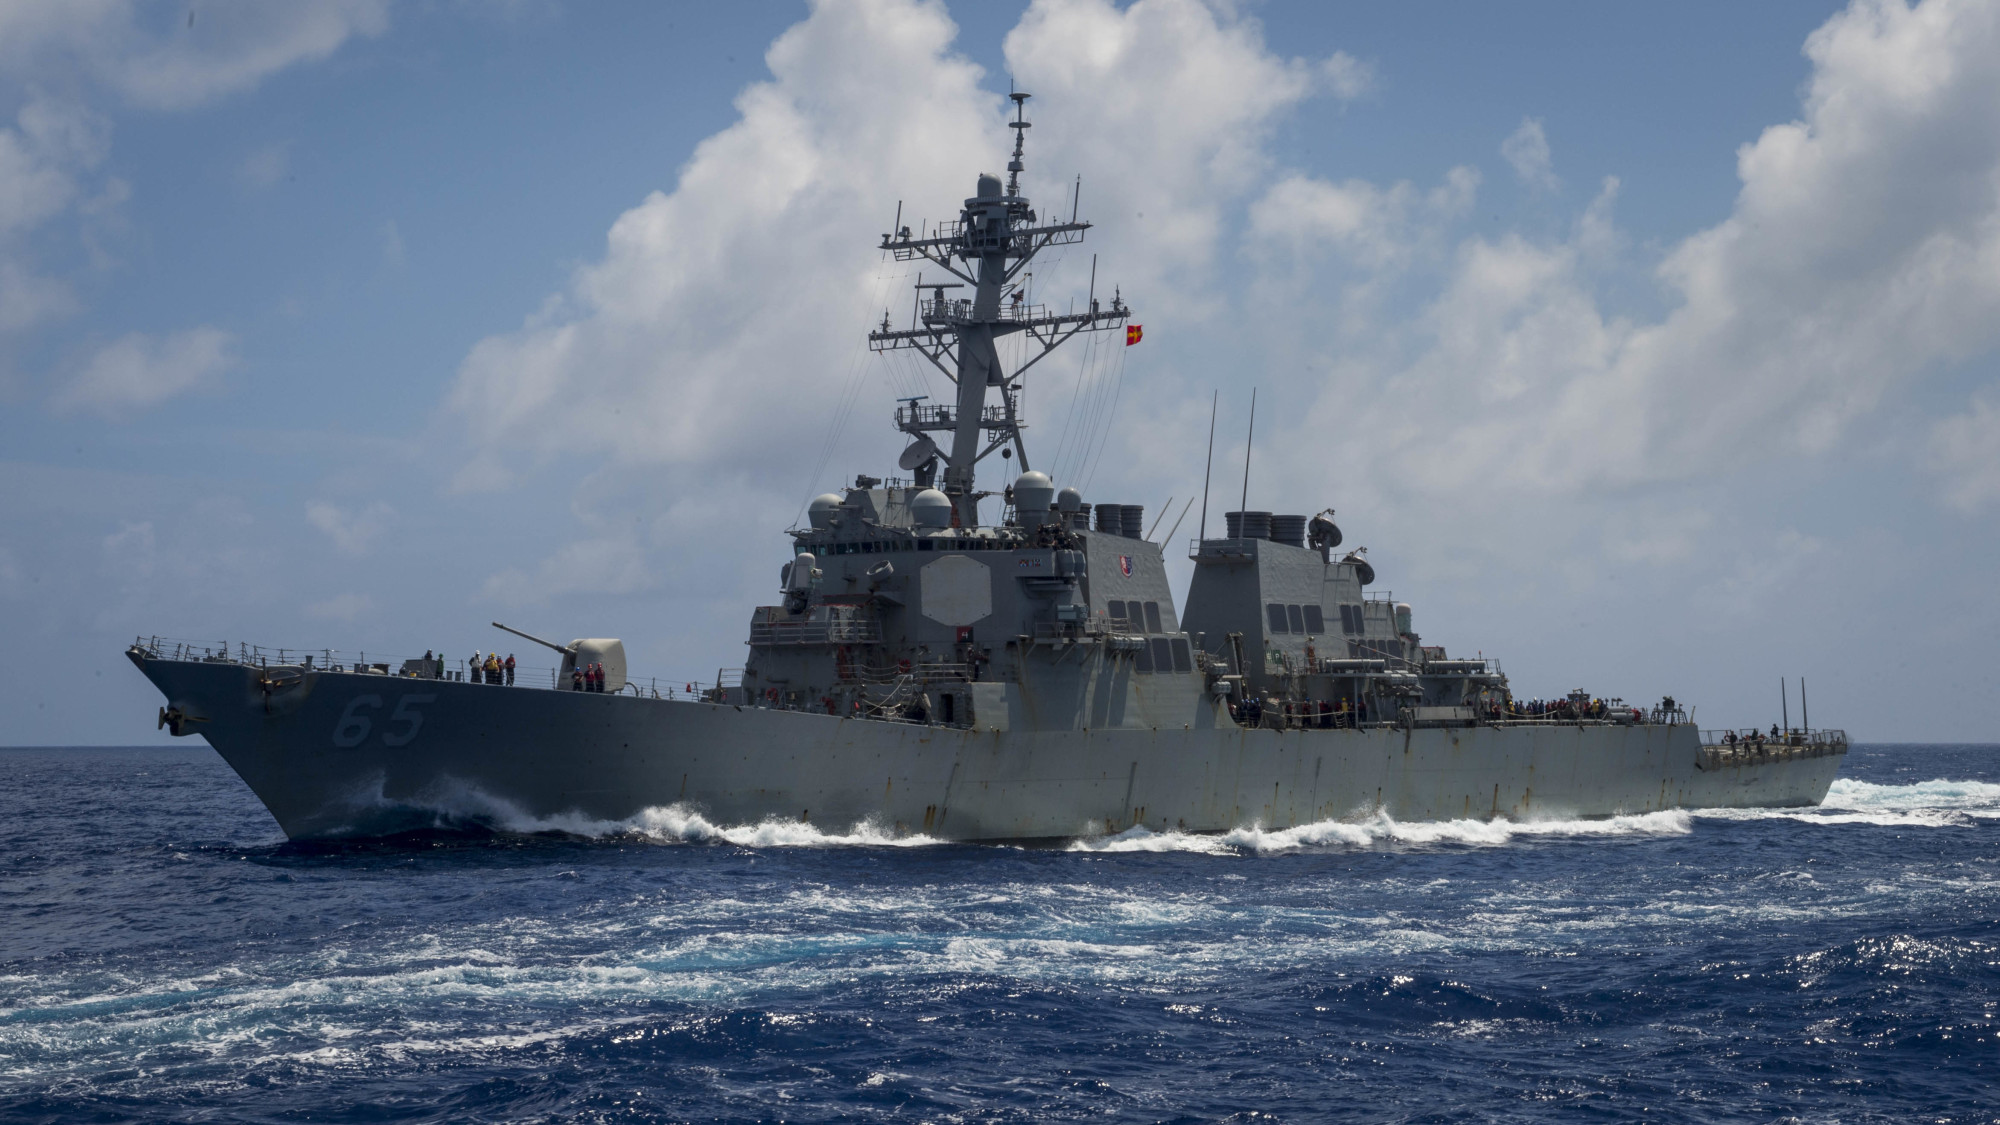 The Arleigh Burke-class guided-missile destroyer USS Benfold transits the Philippine Sea on June 14. | U.S. NAVY